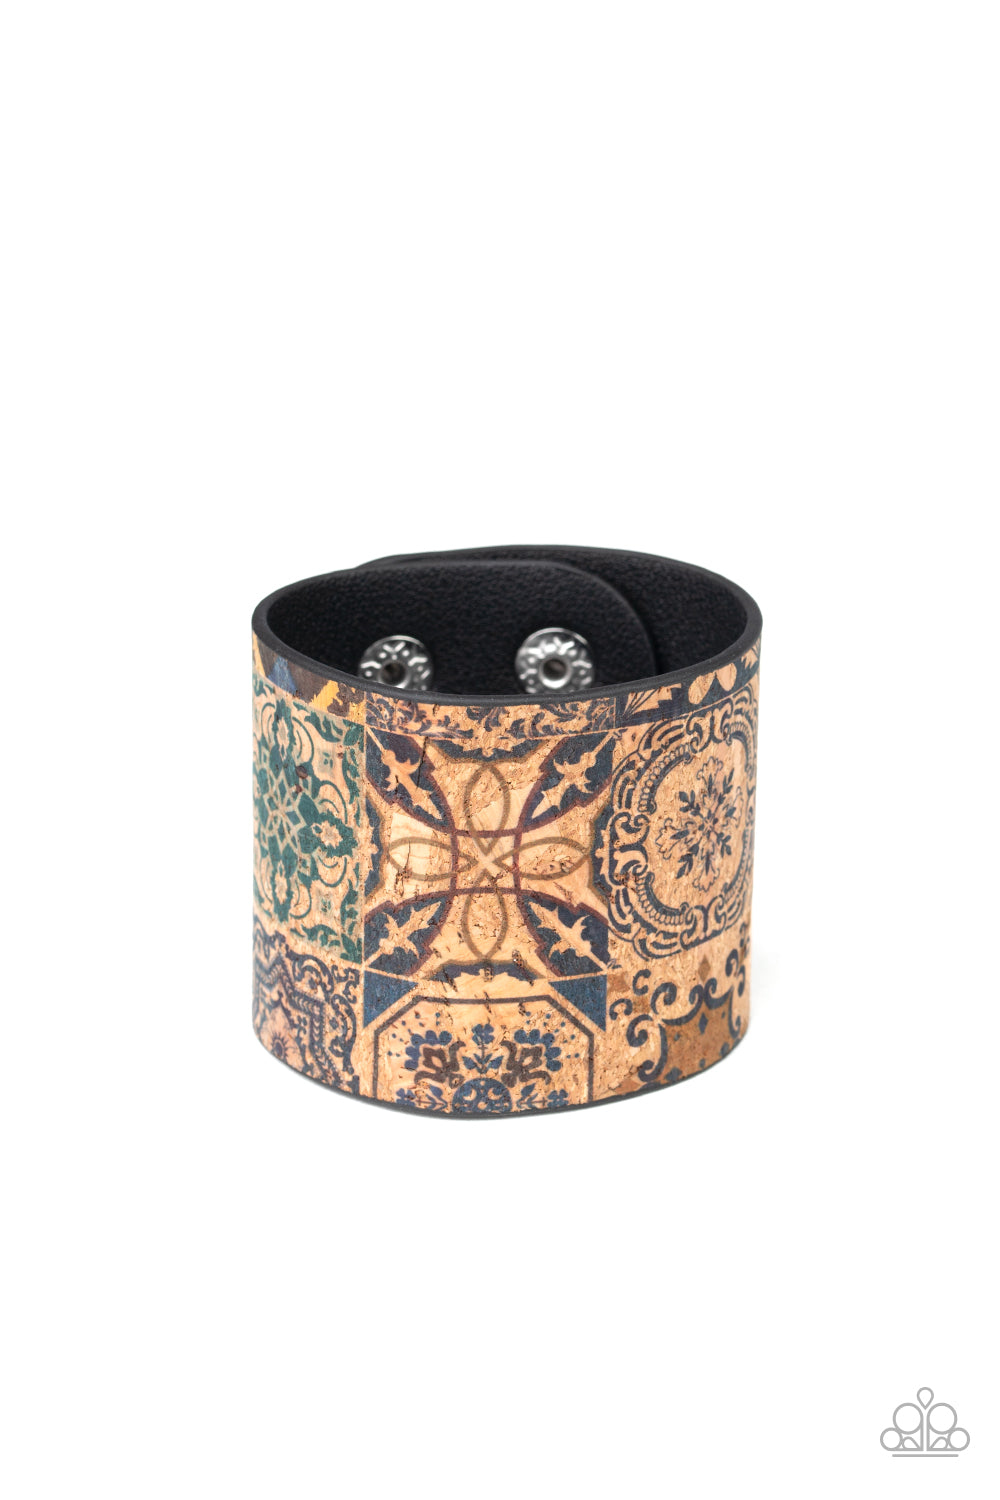 Paparazzi Cork Culture - Multi Urban Bracelet